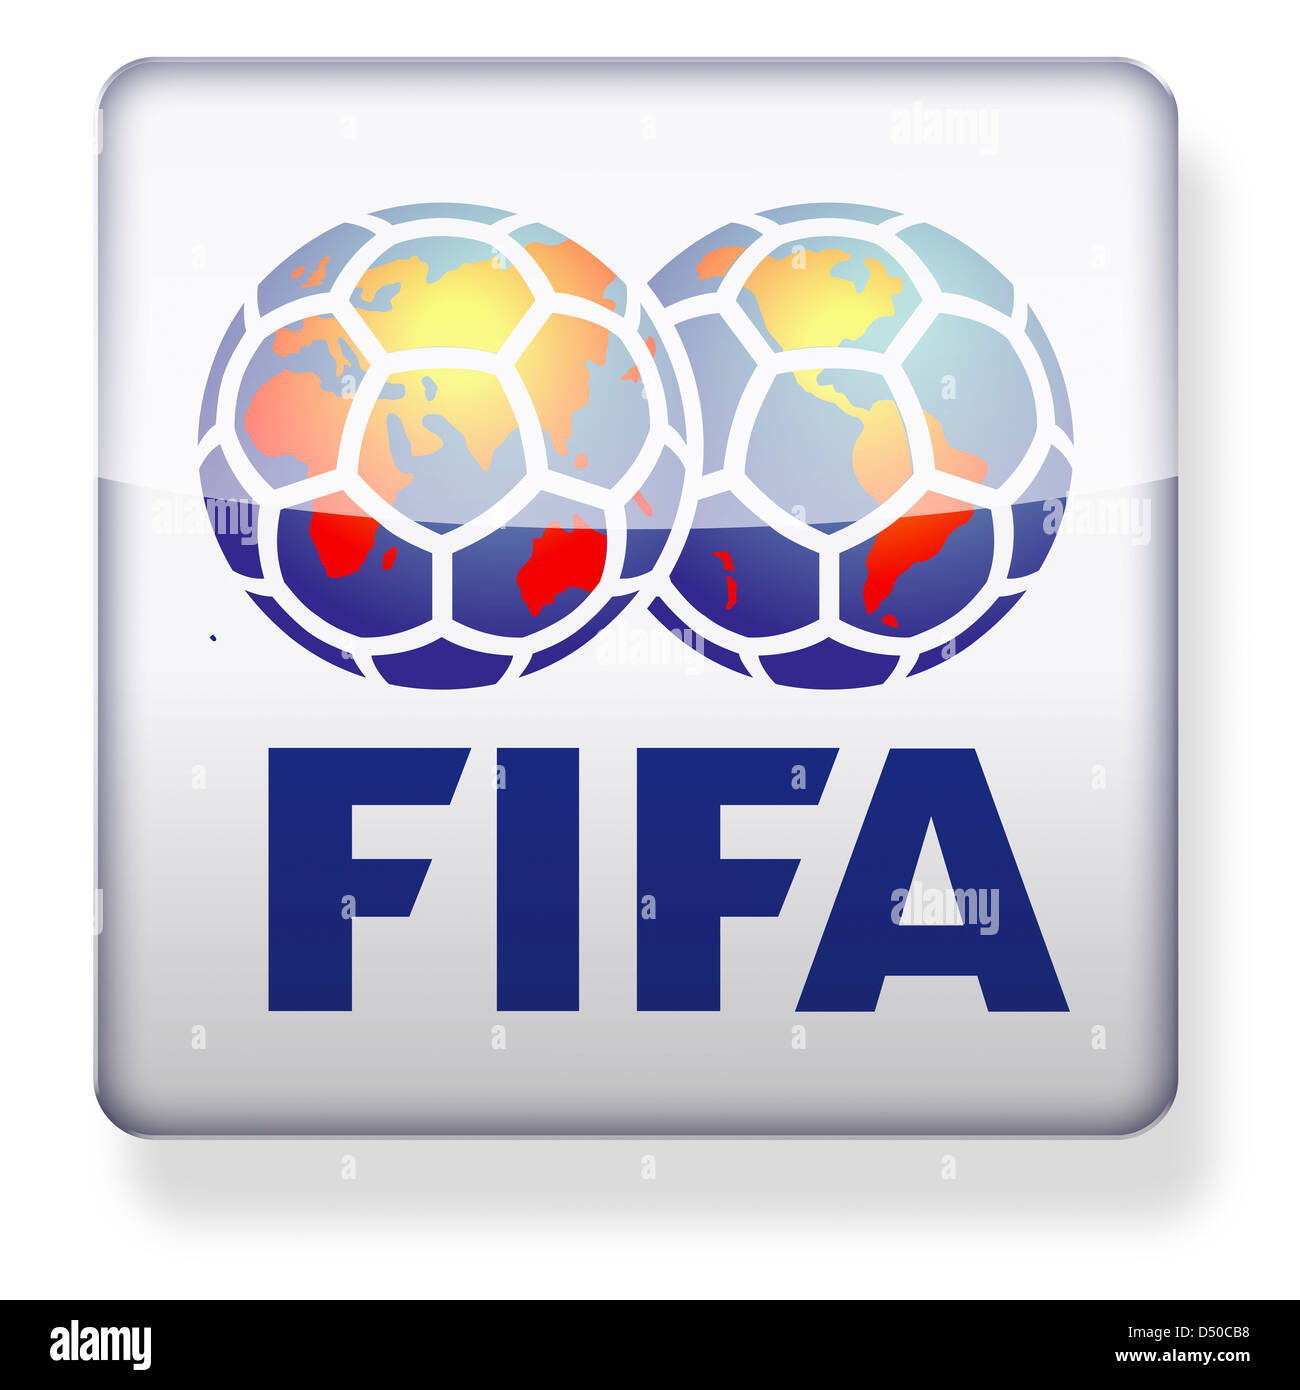 Fifa logo as an app icon. Clipping path included. - Stock Image